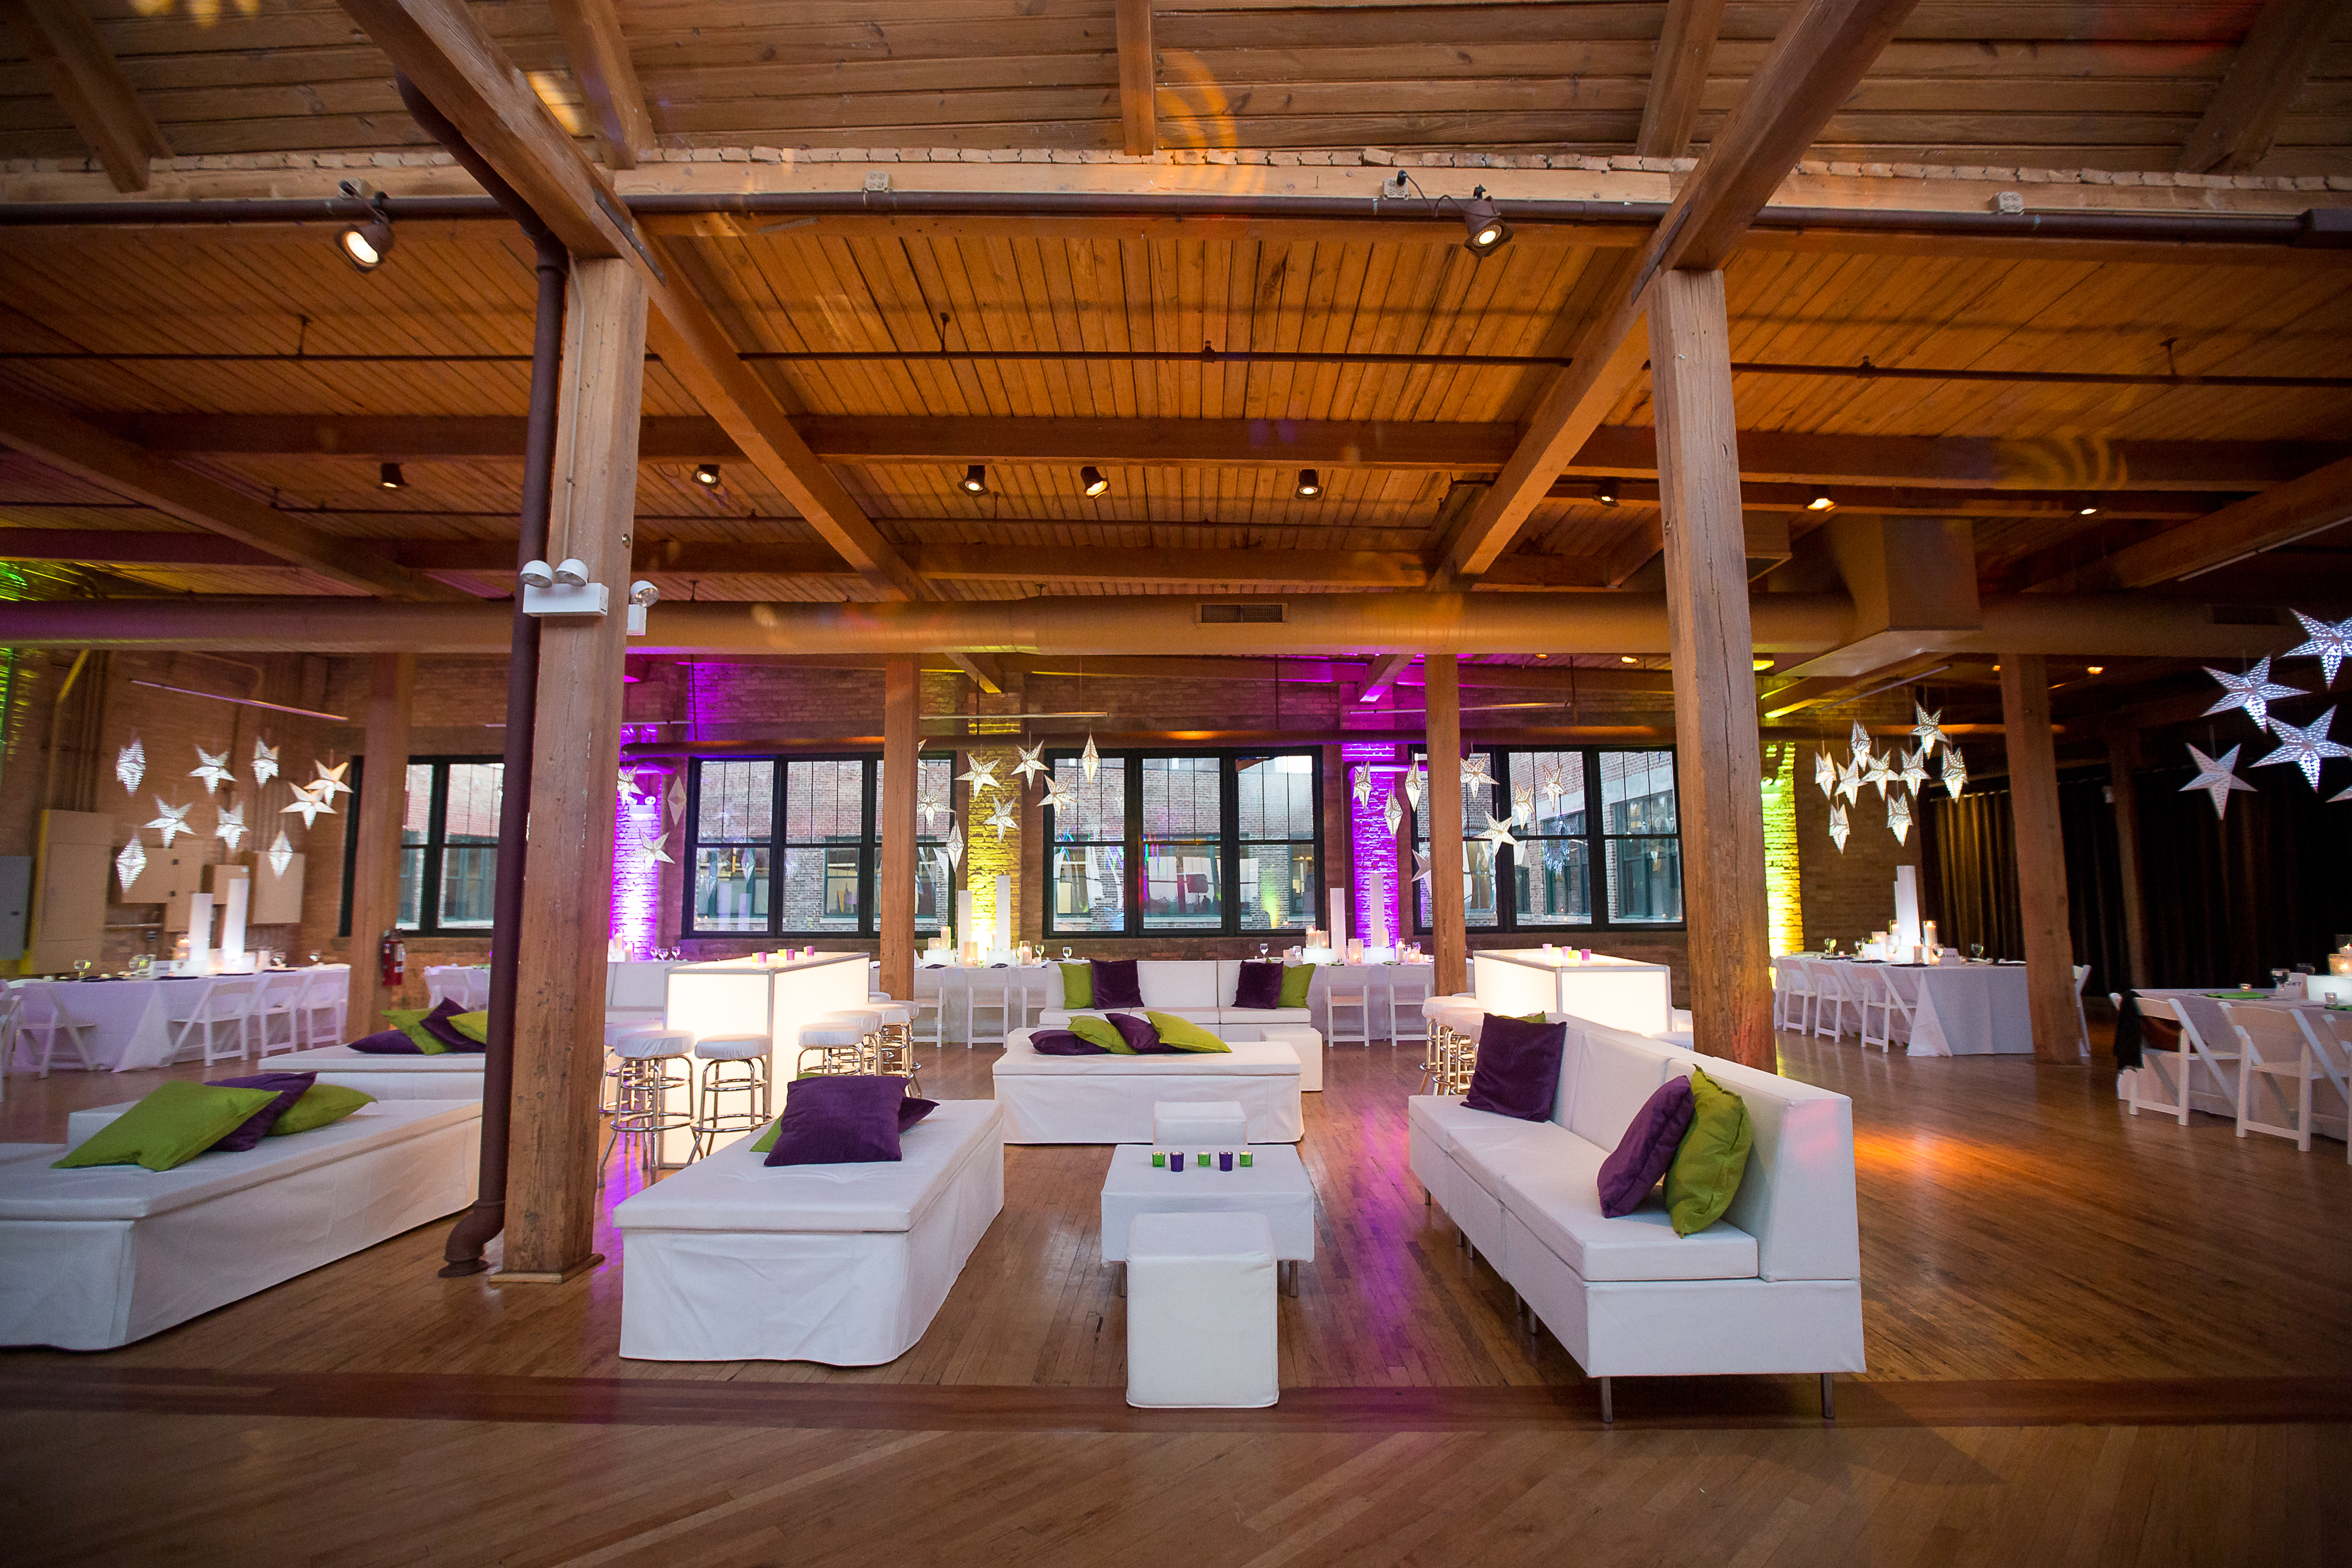 Star Wars Bat Mitzvah - Designer Event Chicago